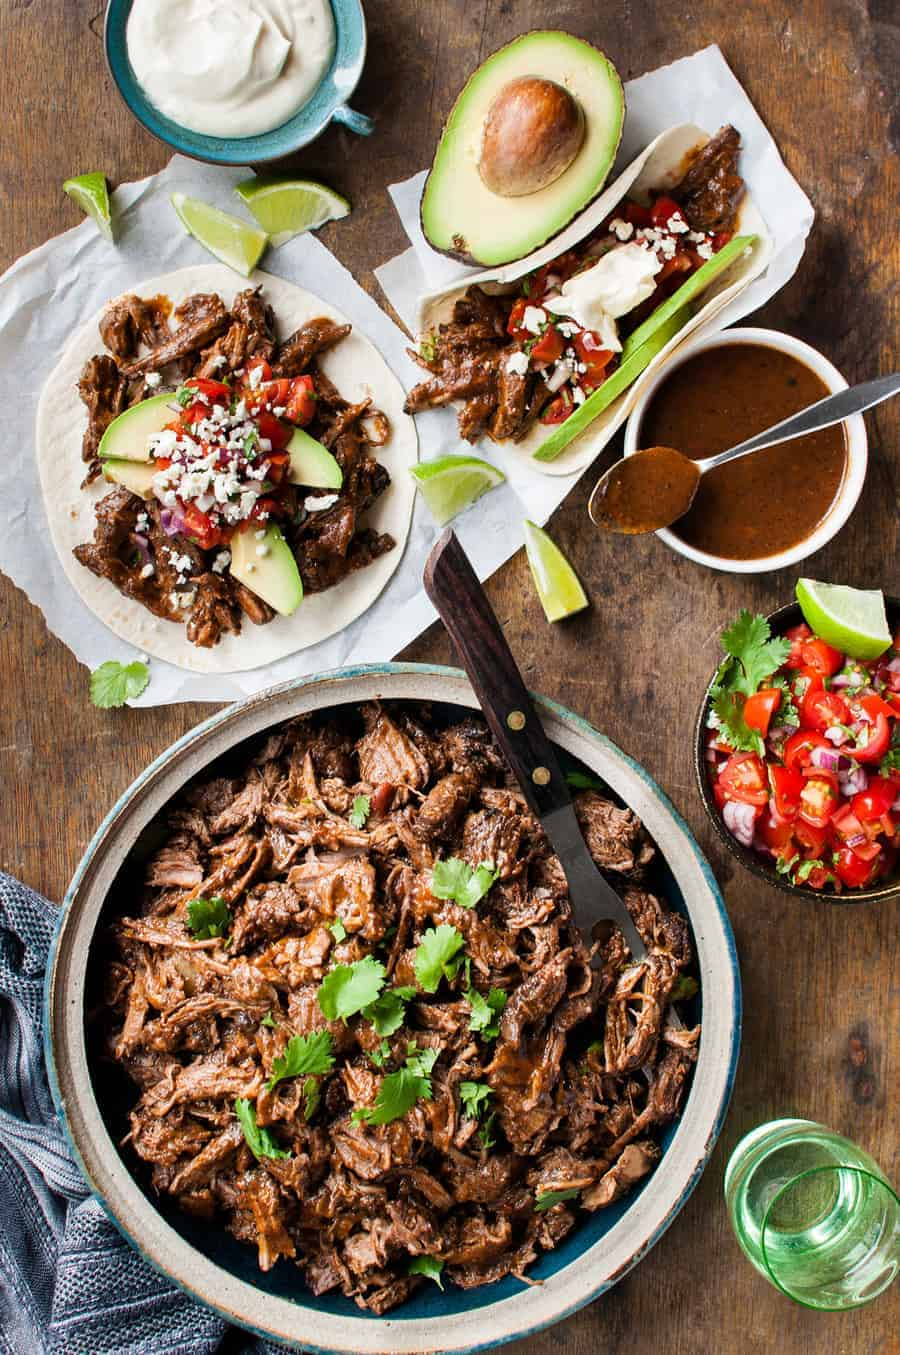 Mexican Shredded Beef - tender beef in a rich sauce, made in the slow cooker, stove or even oven! www.recipetineats.com